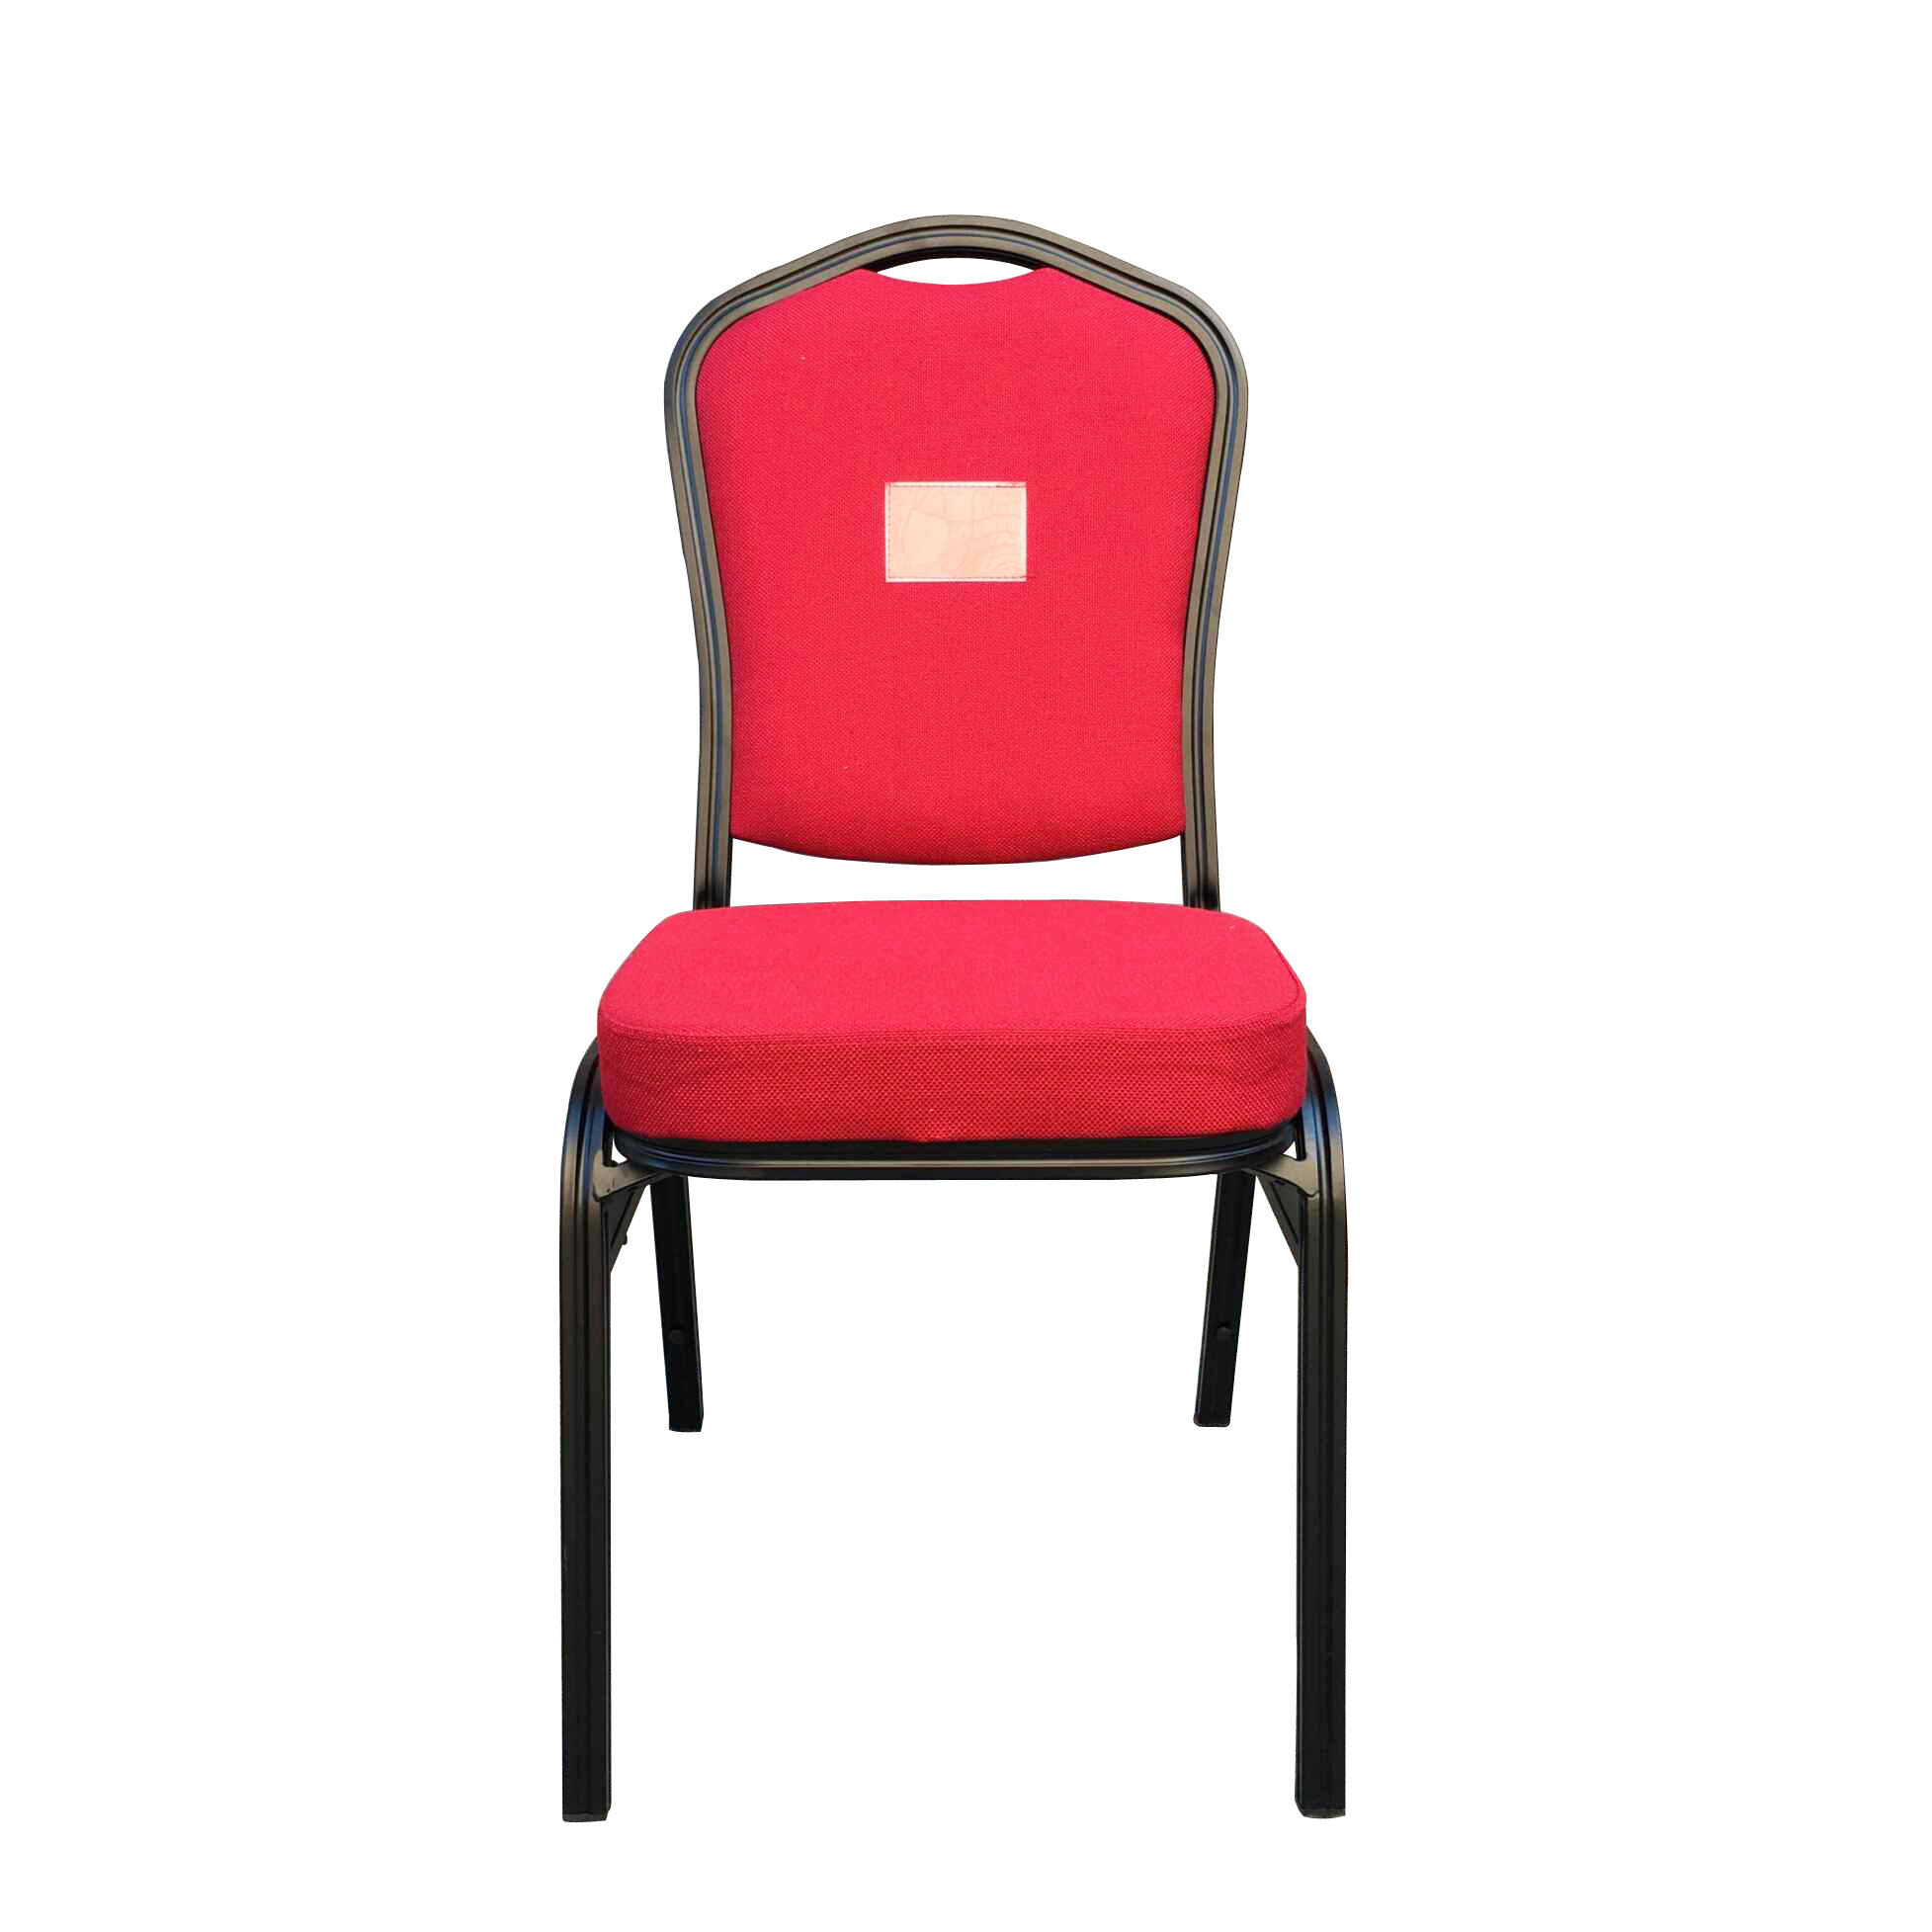 Reasonable price Folding Writing Chair - Banquet Chairs Wholesale SF-L20 – Jiangchang Furniture